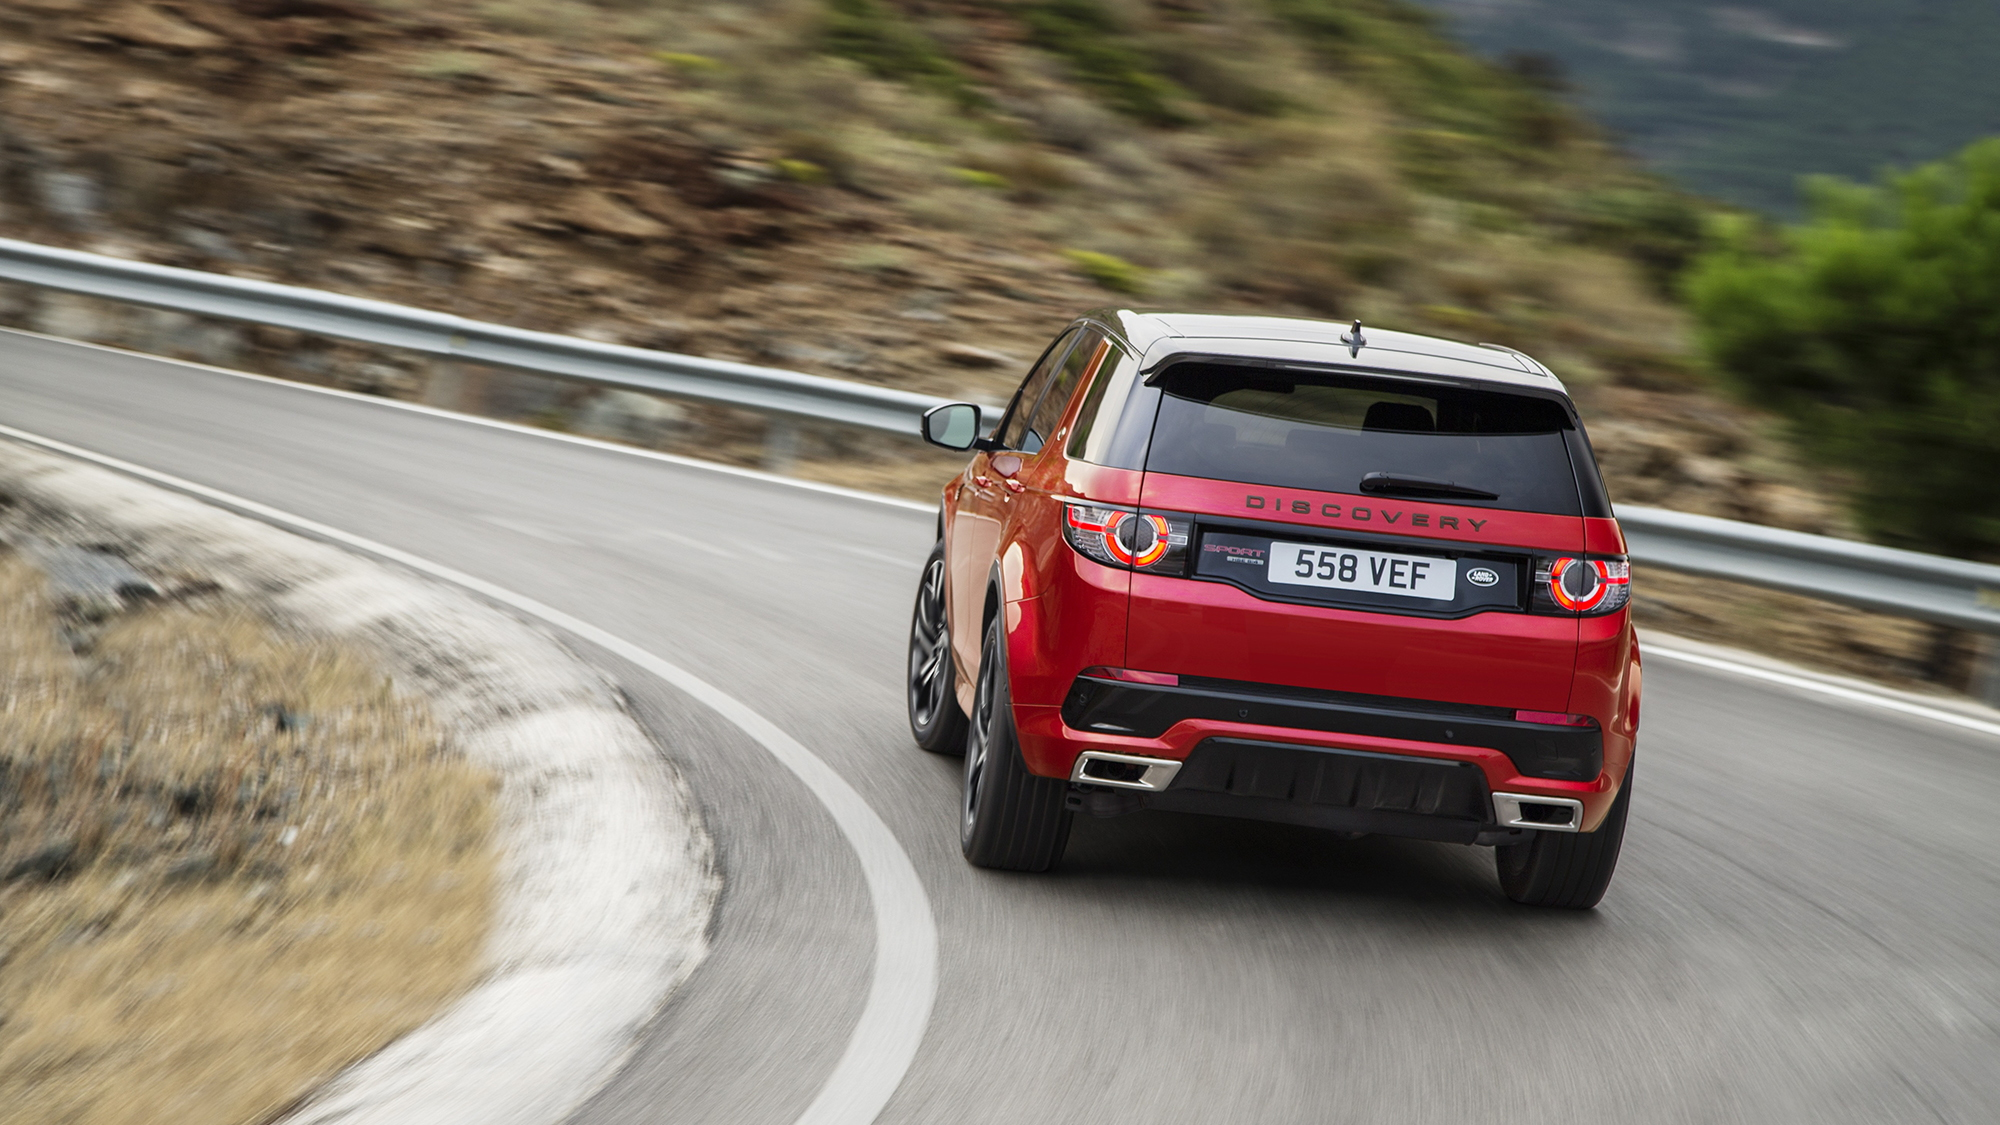 2017 Land Rover Discovery Sport Hse Lux >> 2017 Land Rover Discovery Sport preview